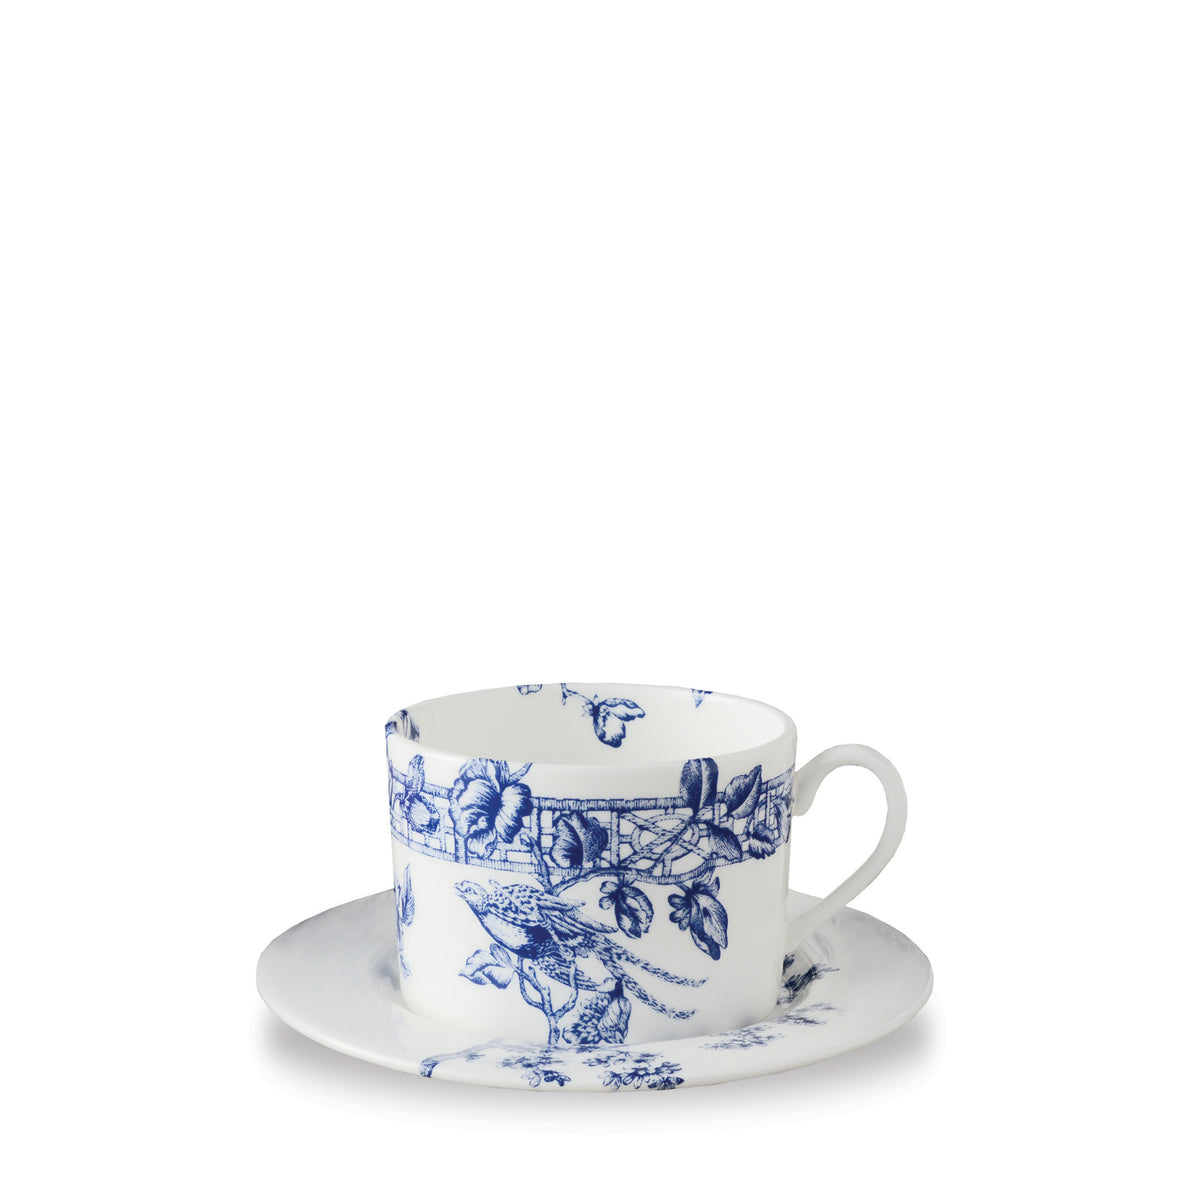 Chinoiserie Toile Can Cup & Saucer - Caskata